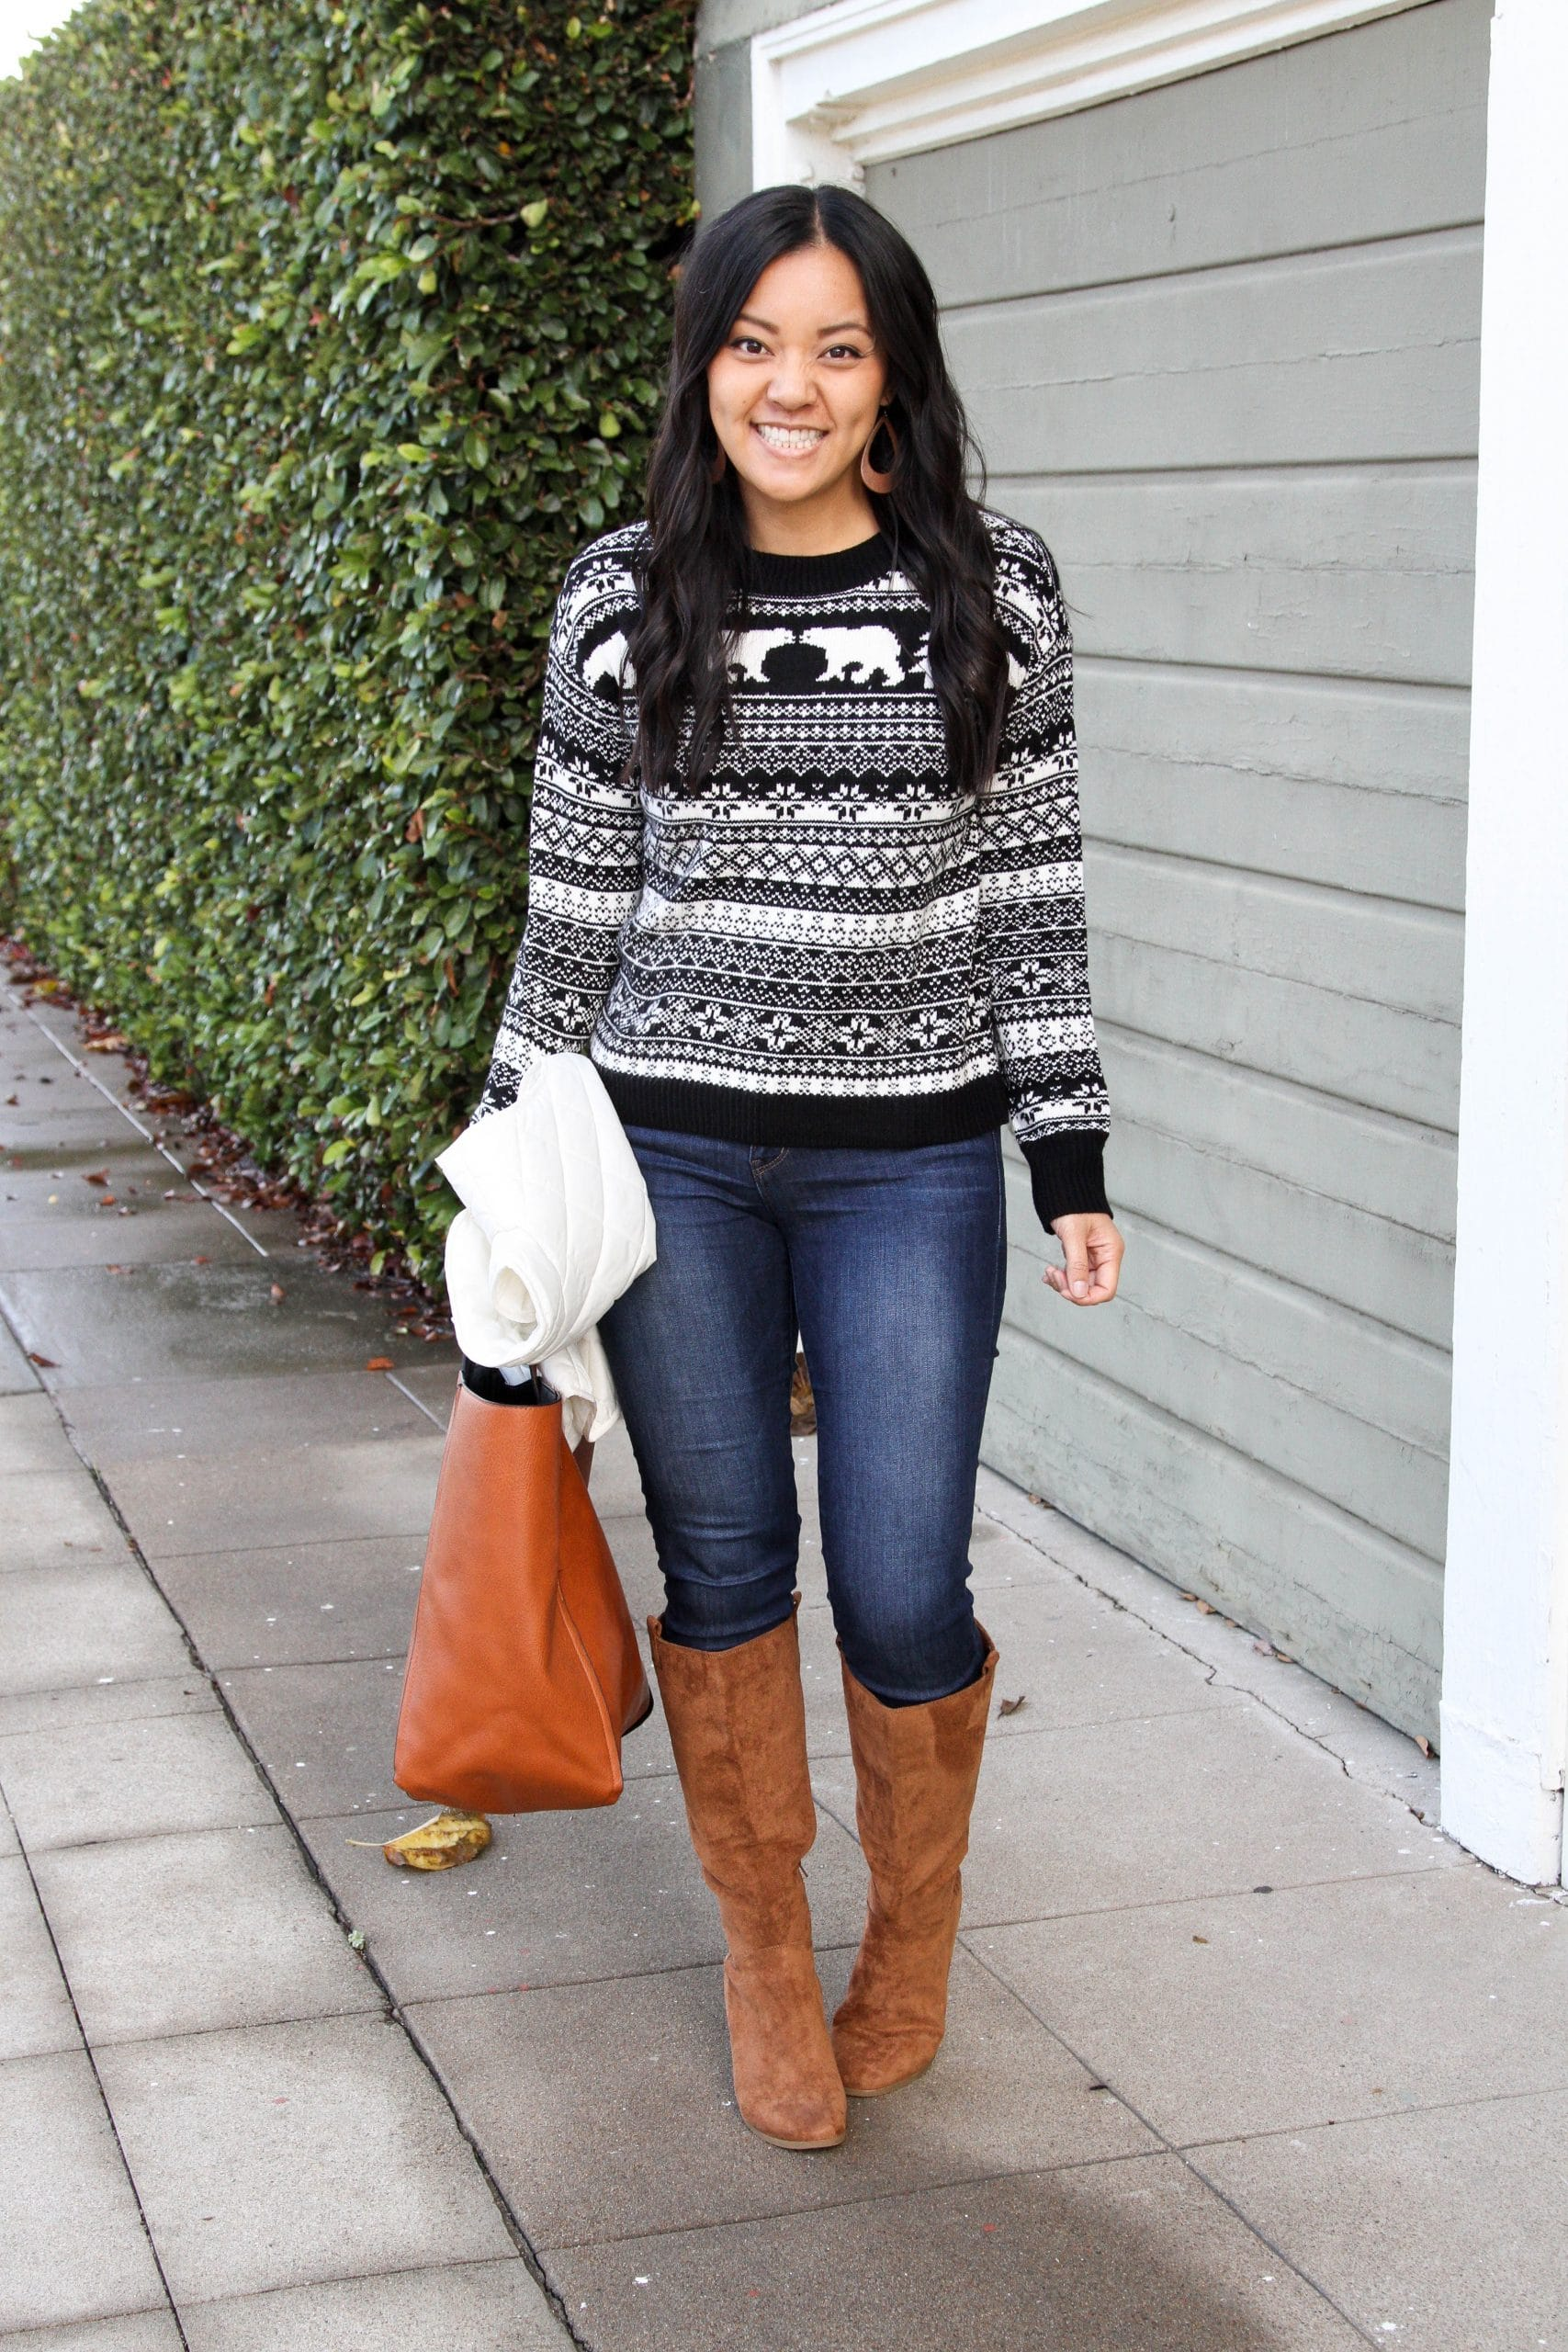 fair isle sweater + skinny jeans + brown boots